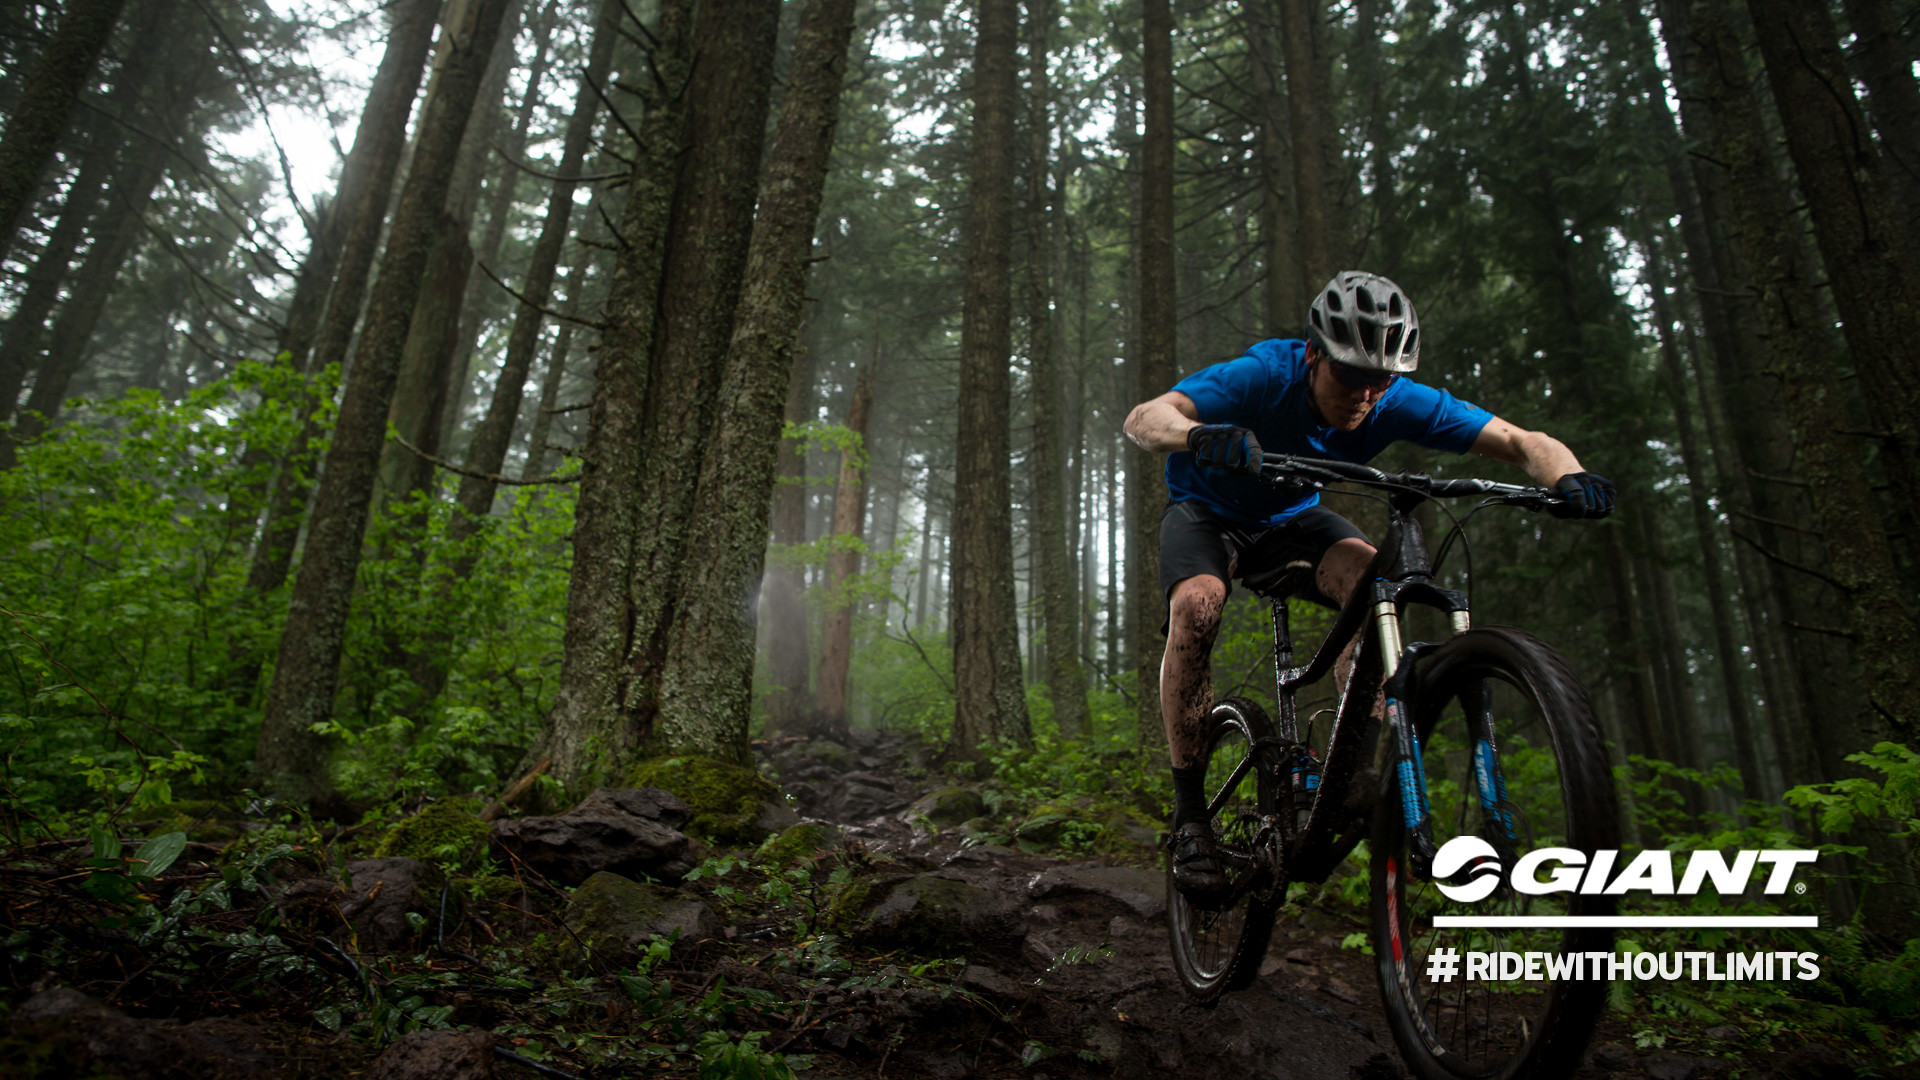 Res: 1920x1080, Giant Bicycles United States